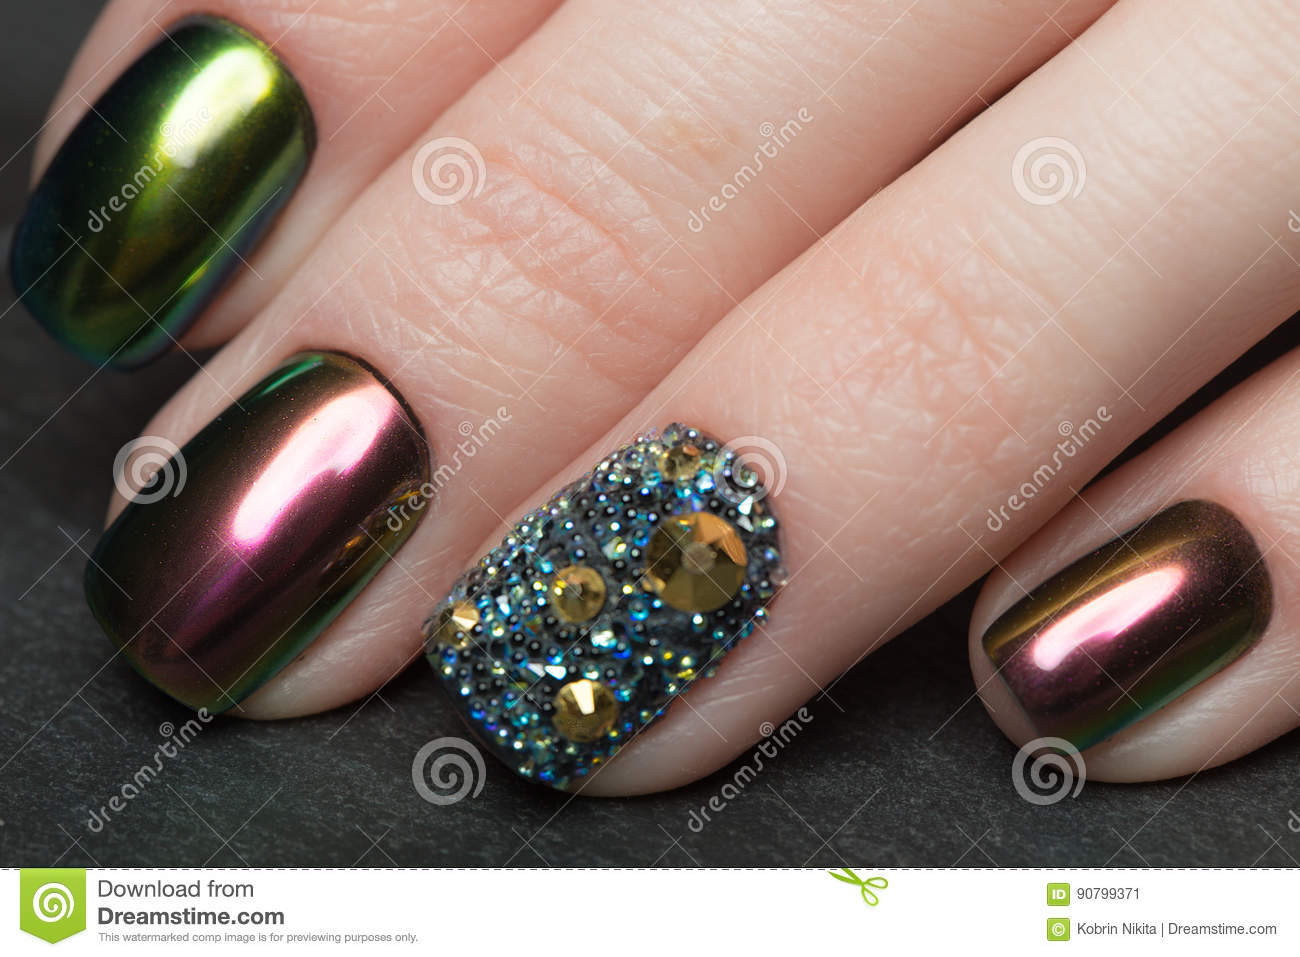 Beautifil Colorful Manicure With Rhinestone Nail Design Close Up